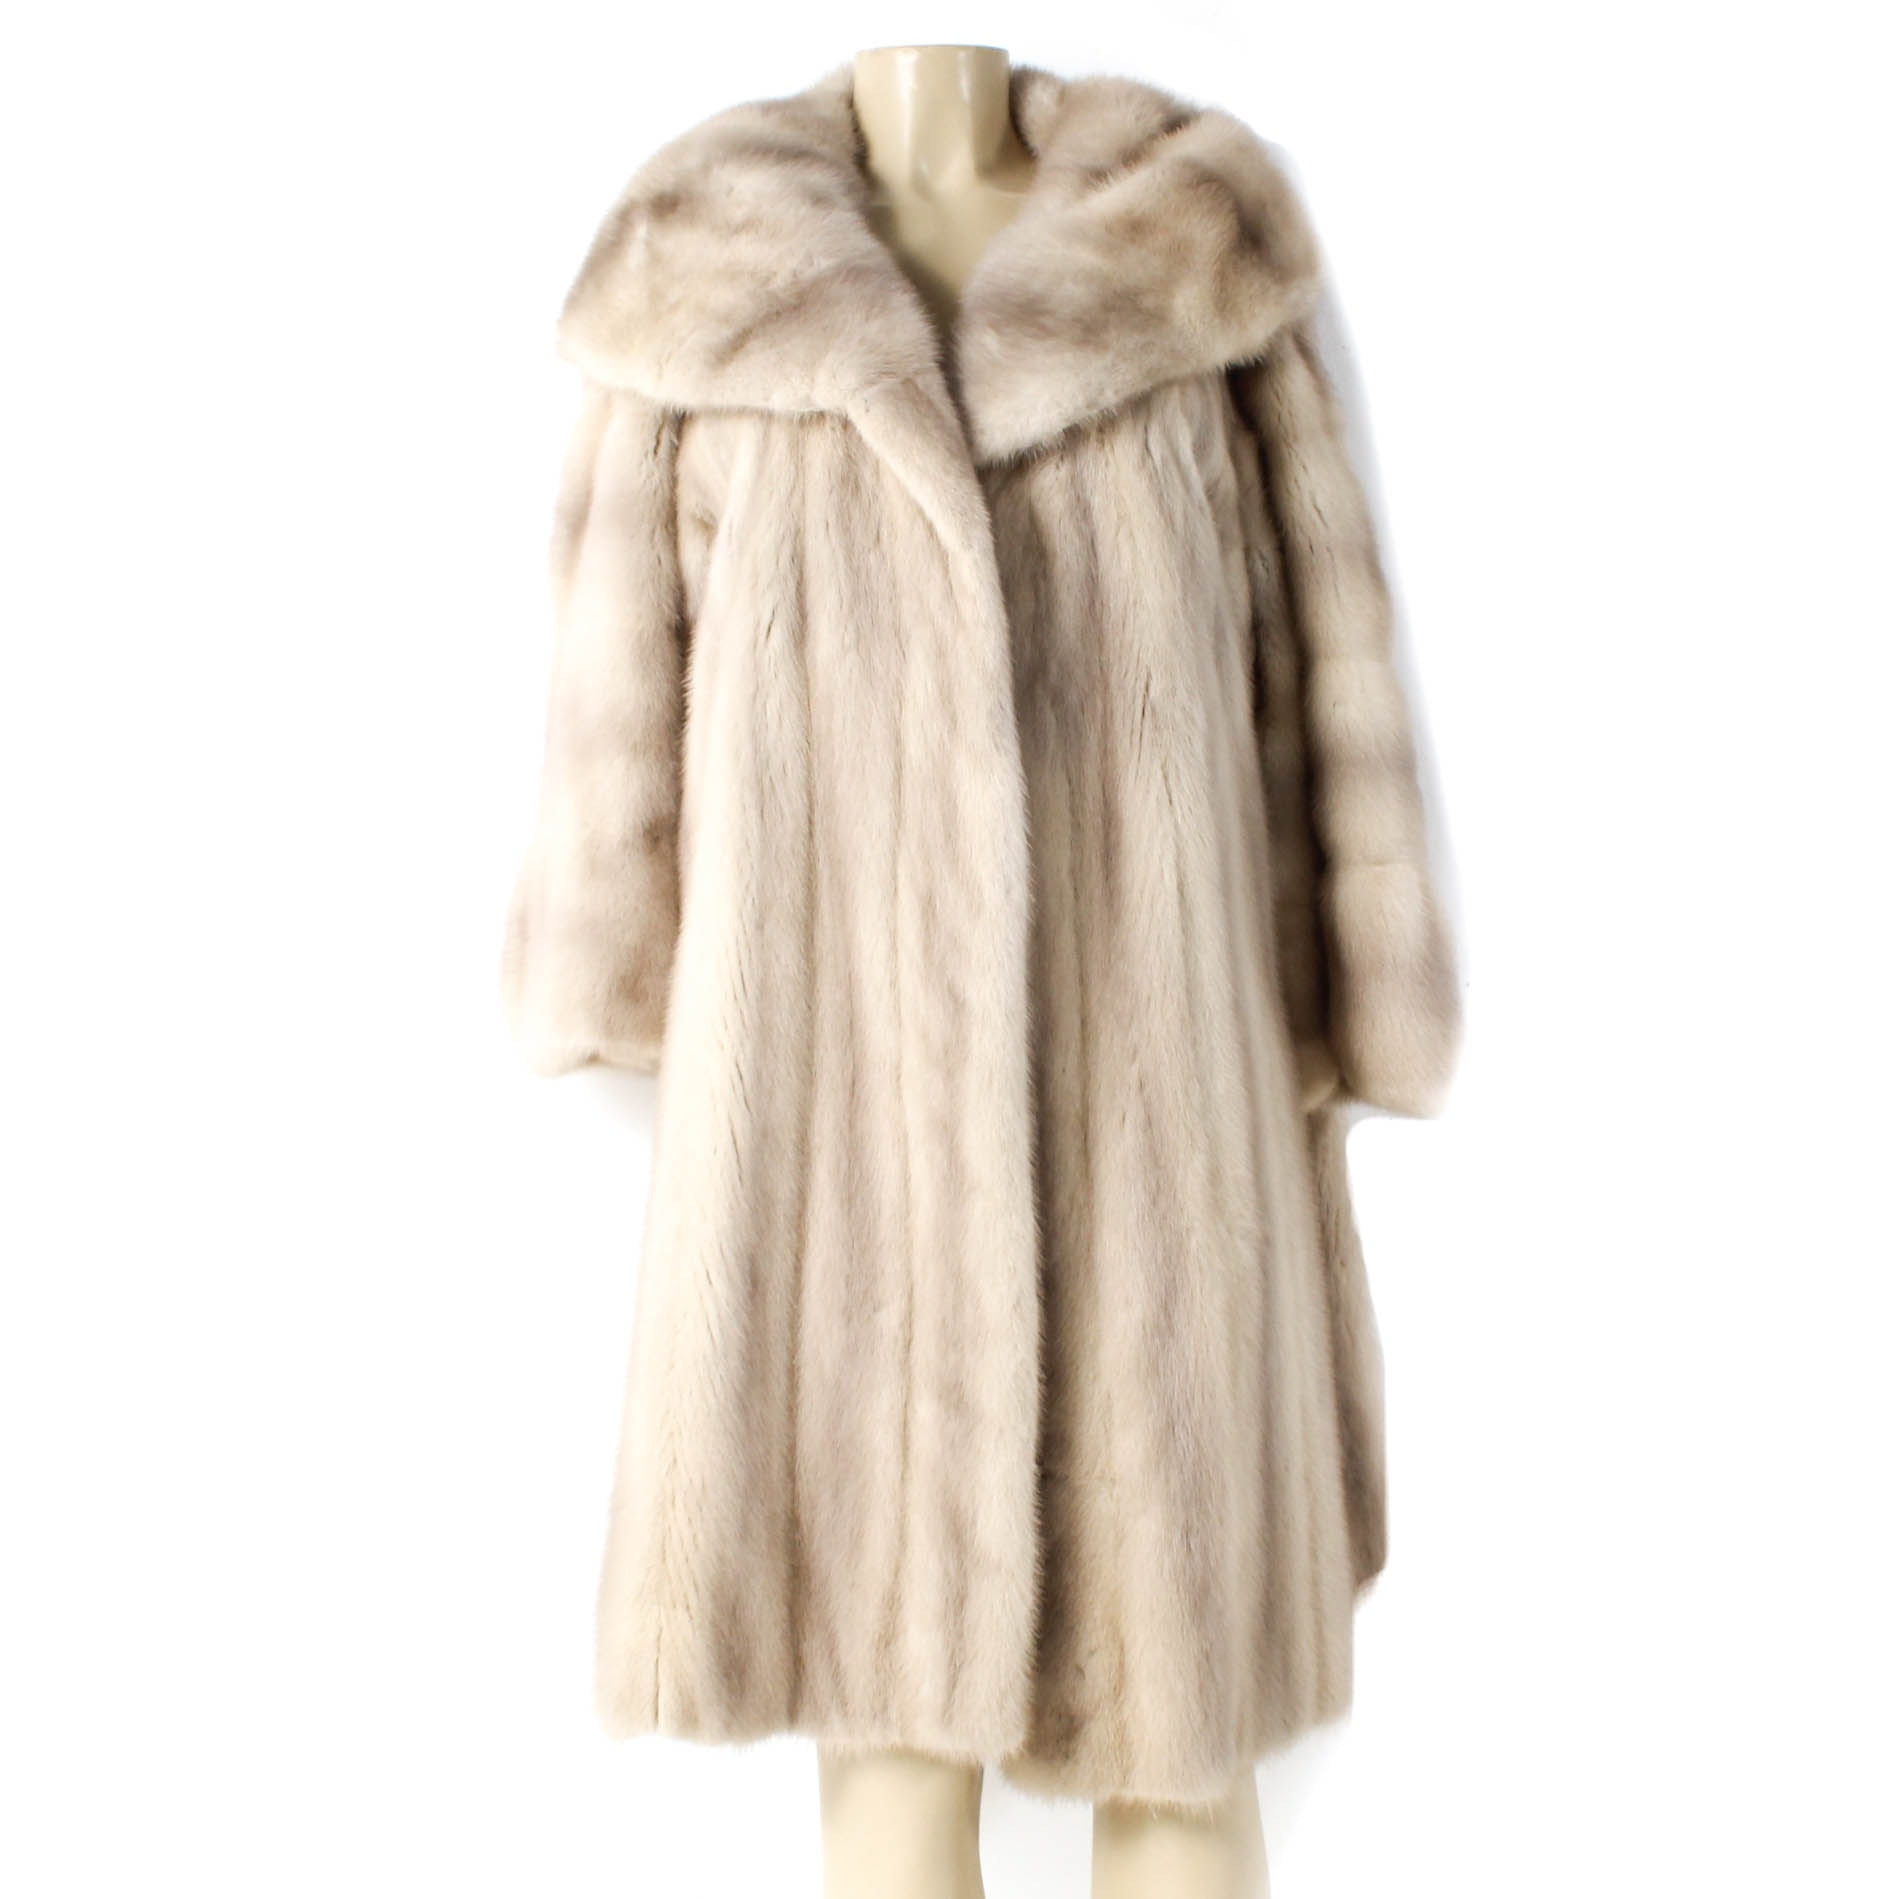 Vintage Tourmaline Mink Fur Swing Coat